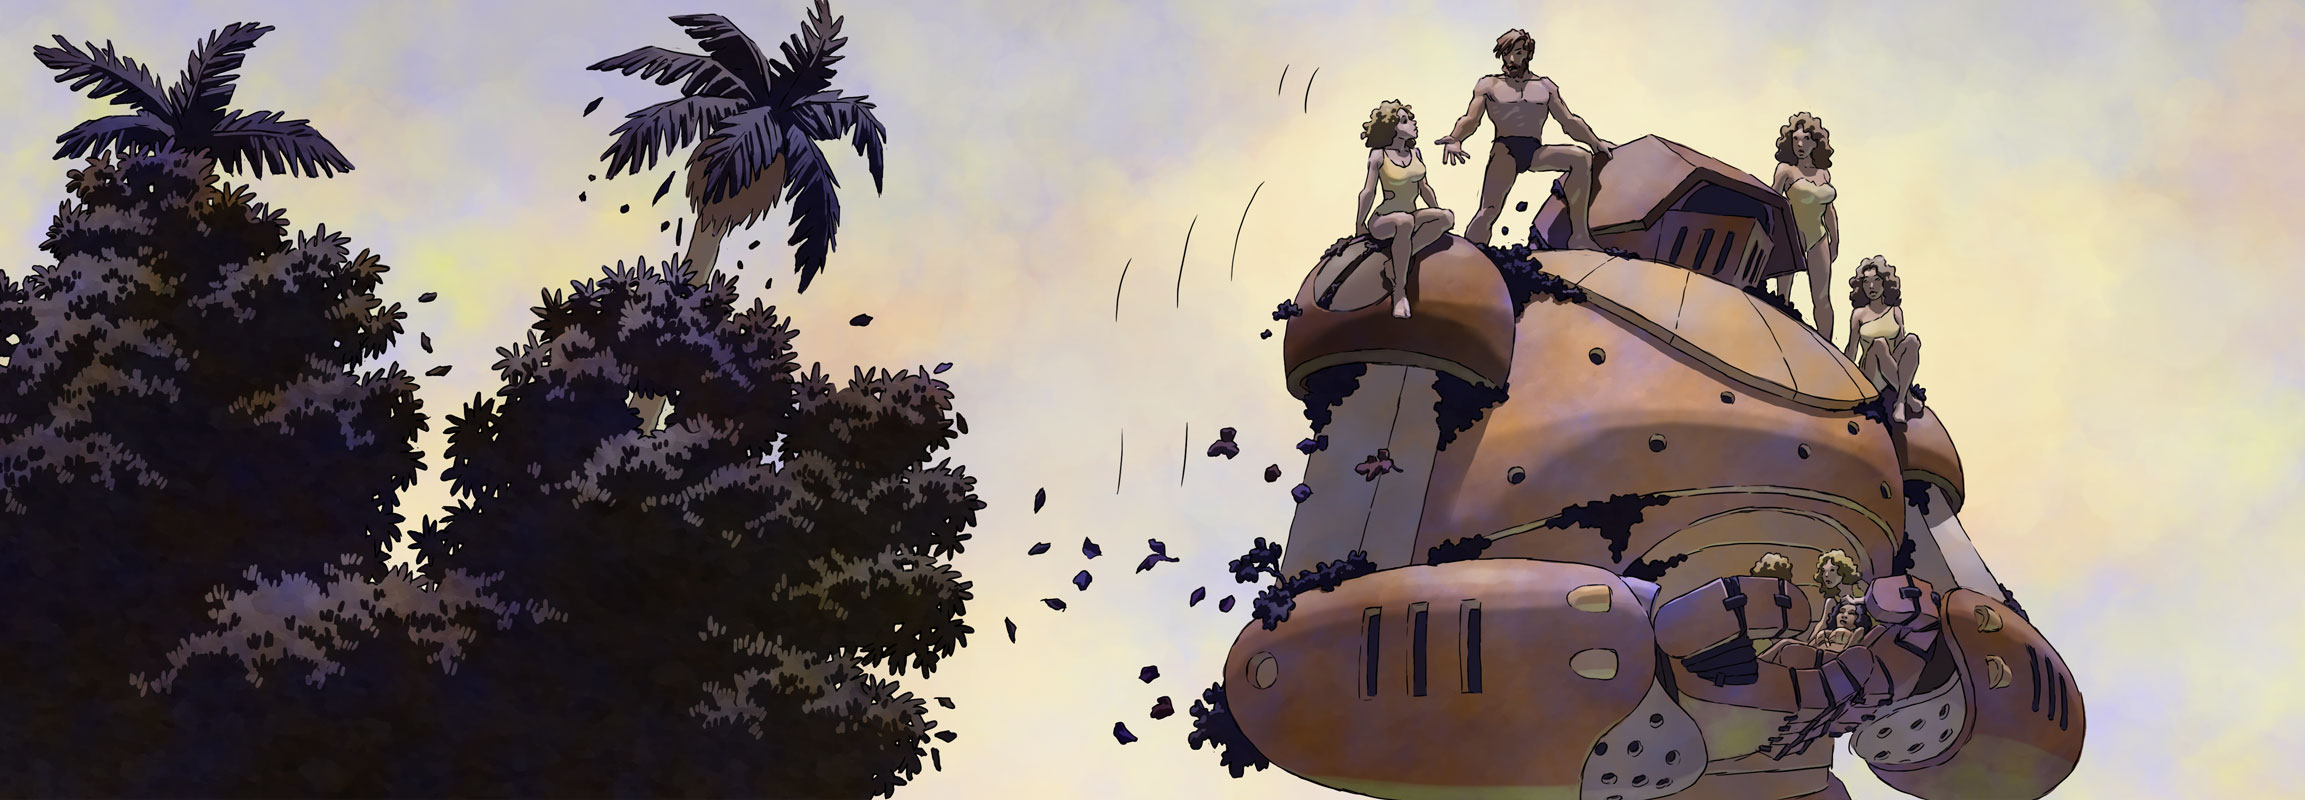 Emery and his new friends ride on a giant robot